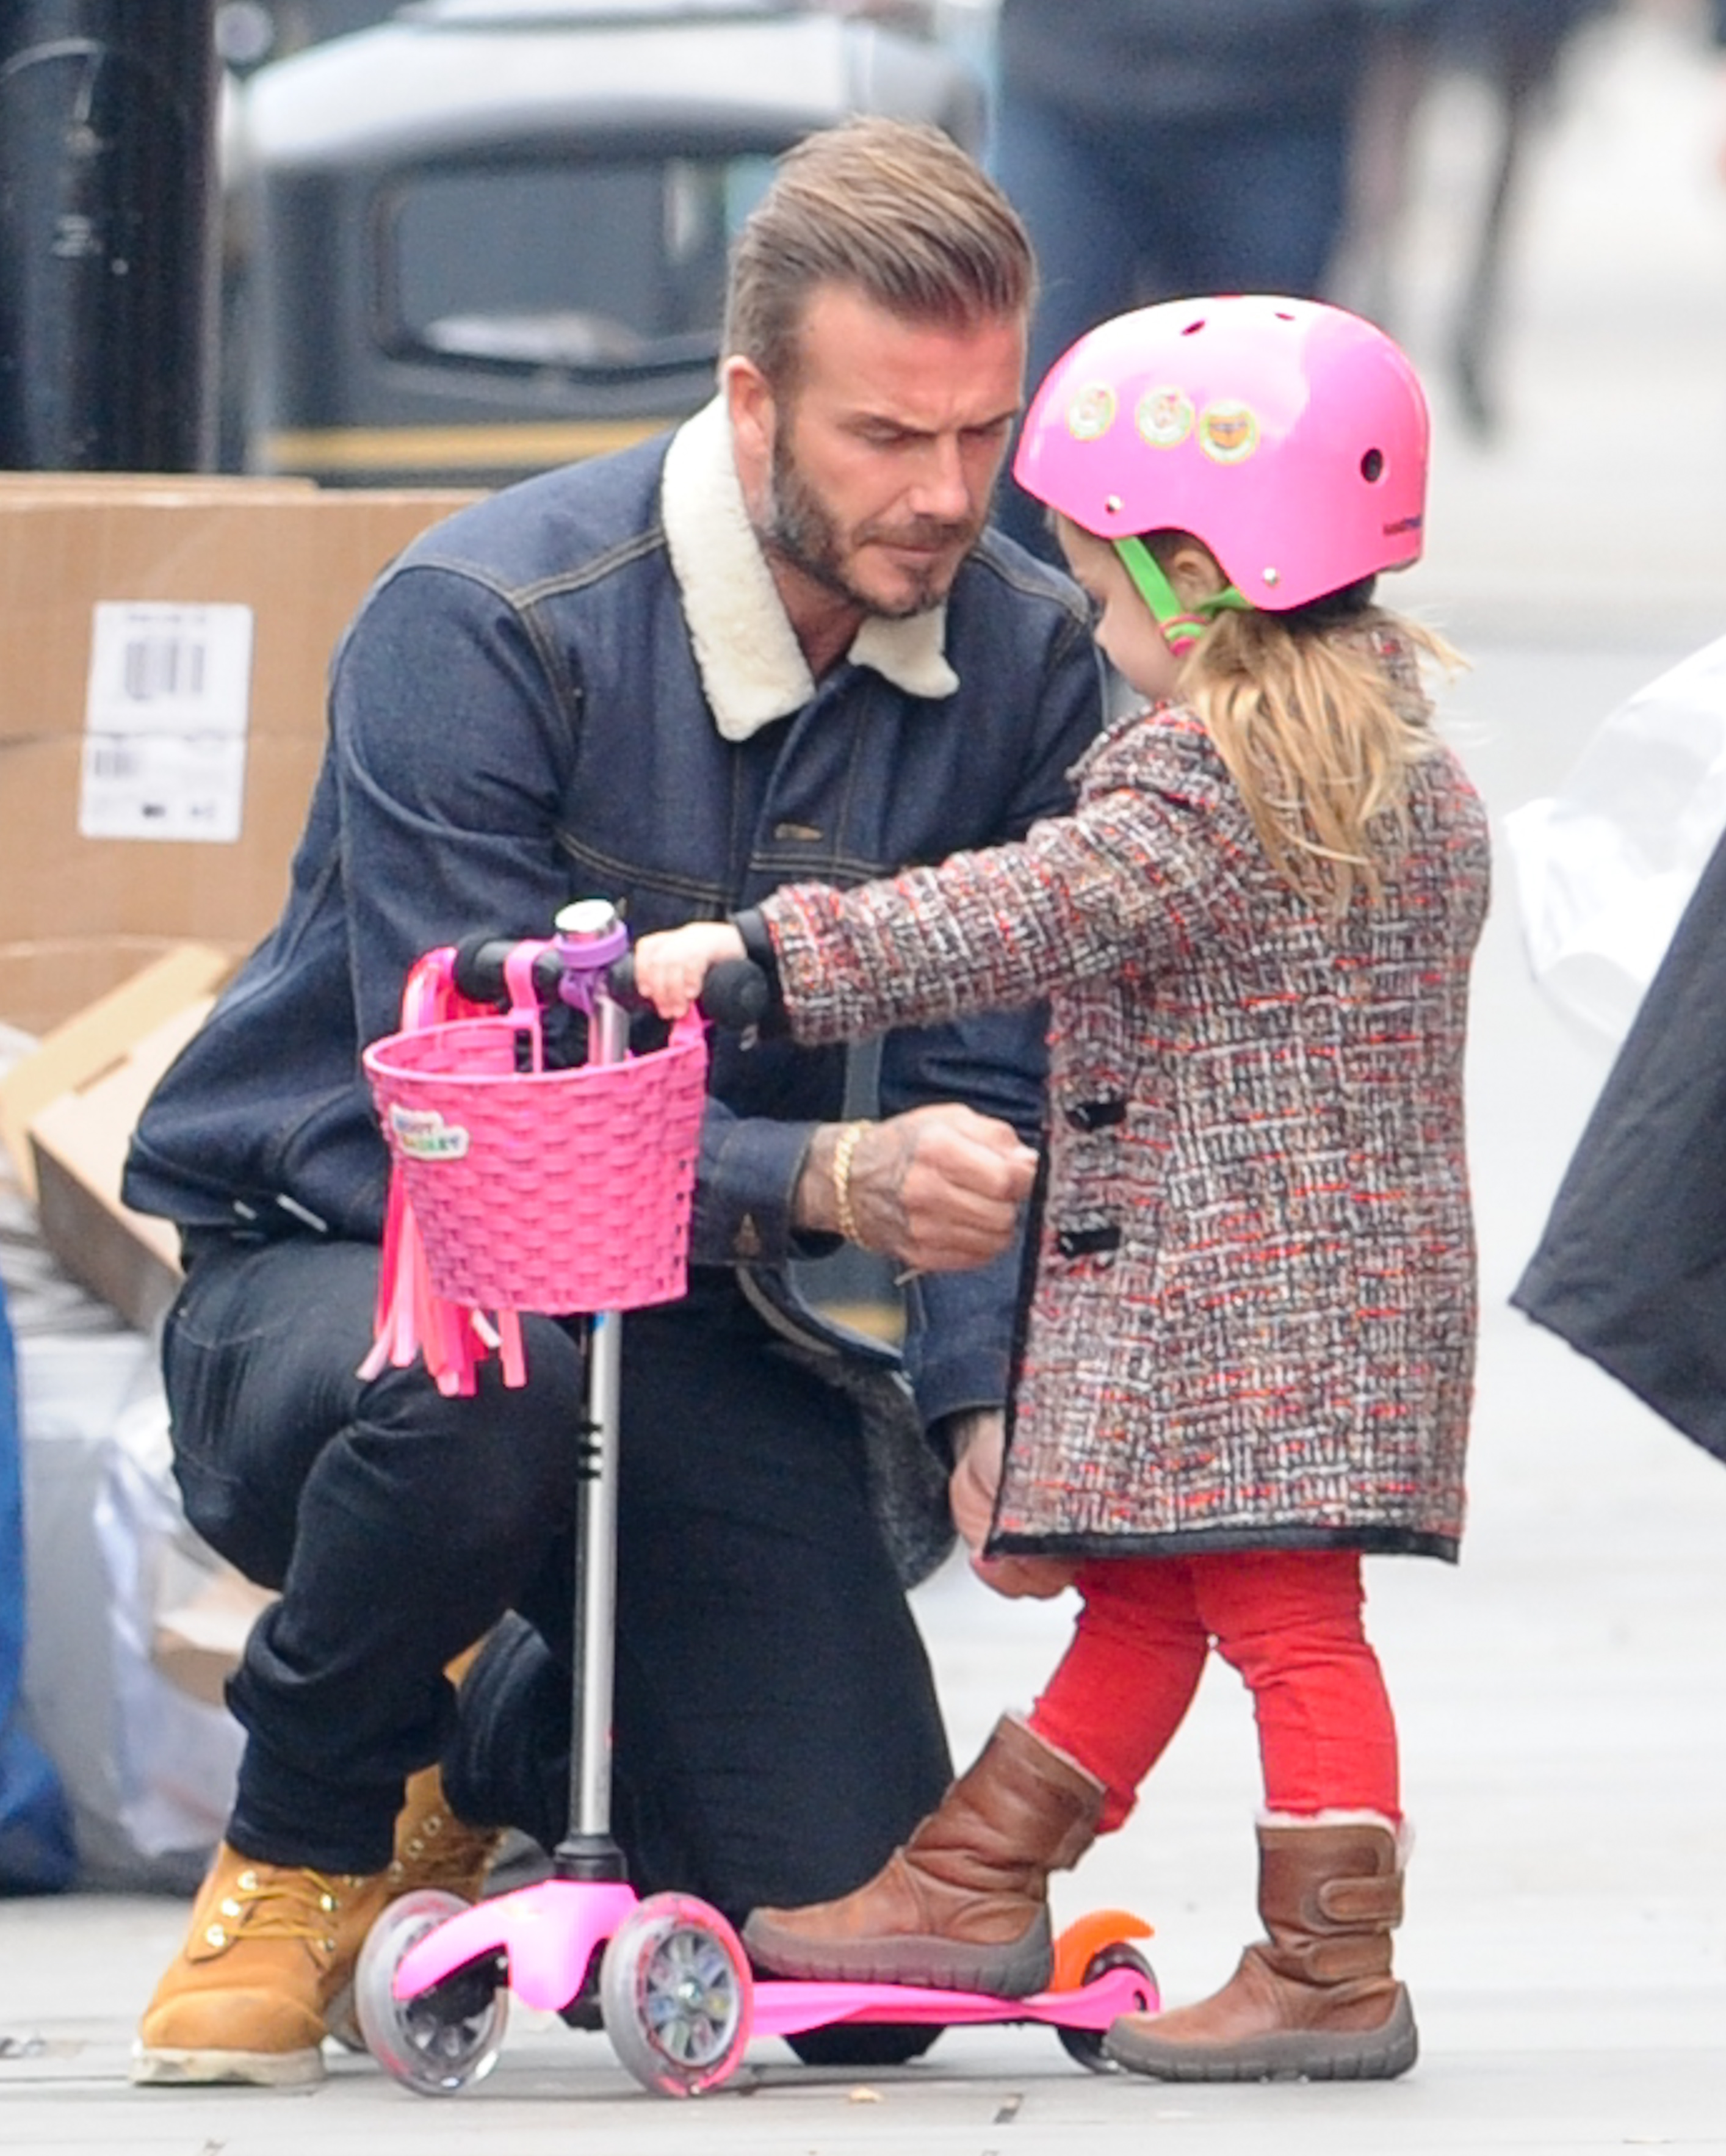 David & Harper Beckham, seen out in Notting Hill, London. 2nd Edit 13 January 2015. Please byline: Vantagenews.co.uk UK clients should be aware children's faces may need pixelating.